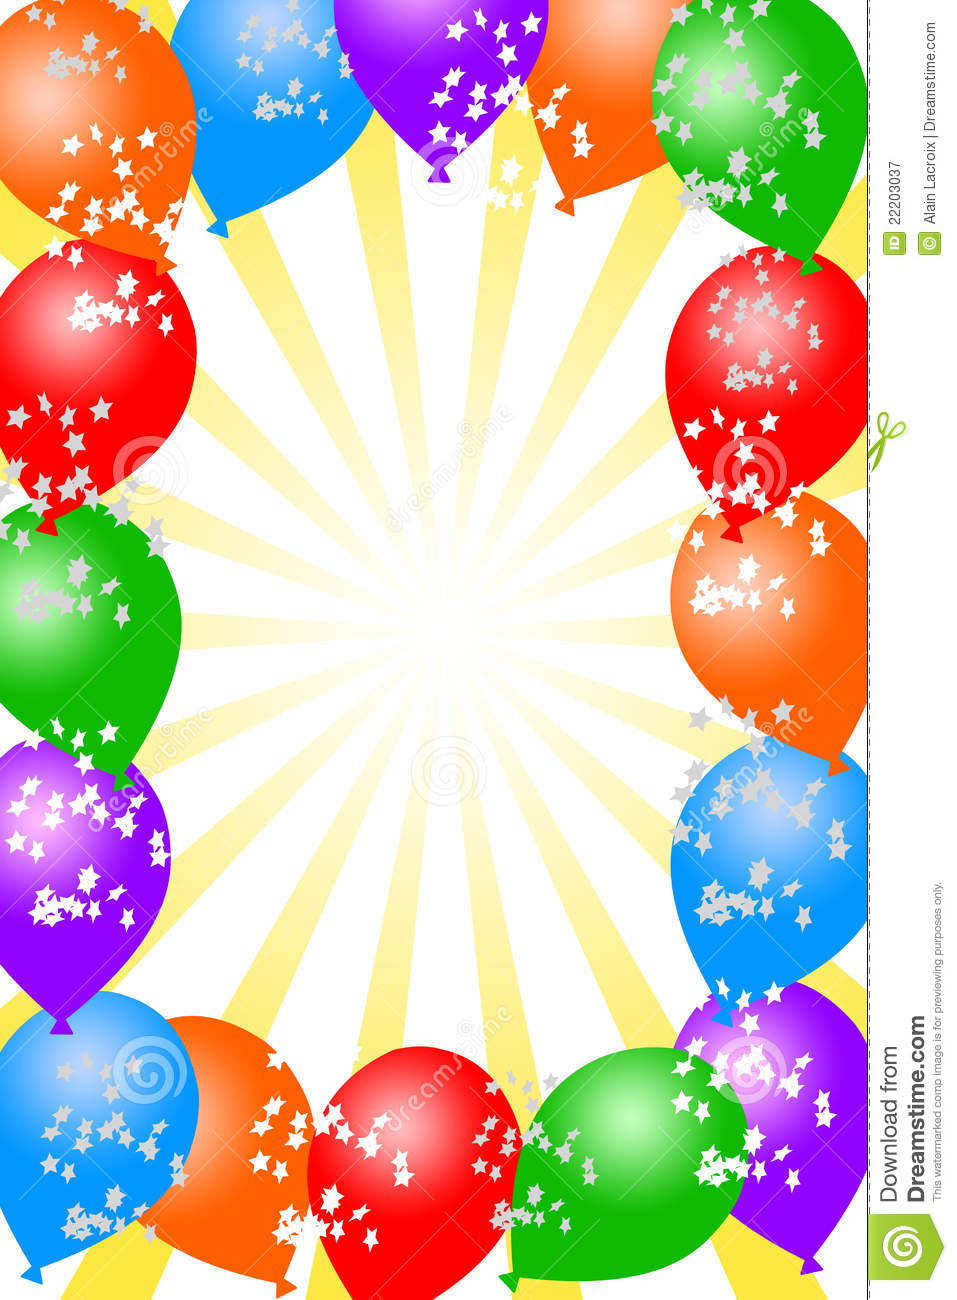 Image Result For Birthday Pics Free Download Unique Birthday Frames Free Download Clip Art Free Clip Art On